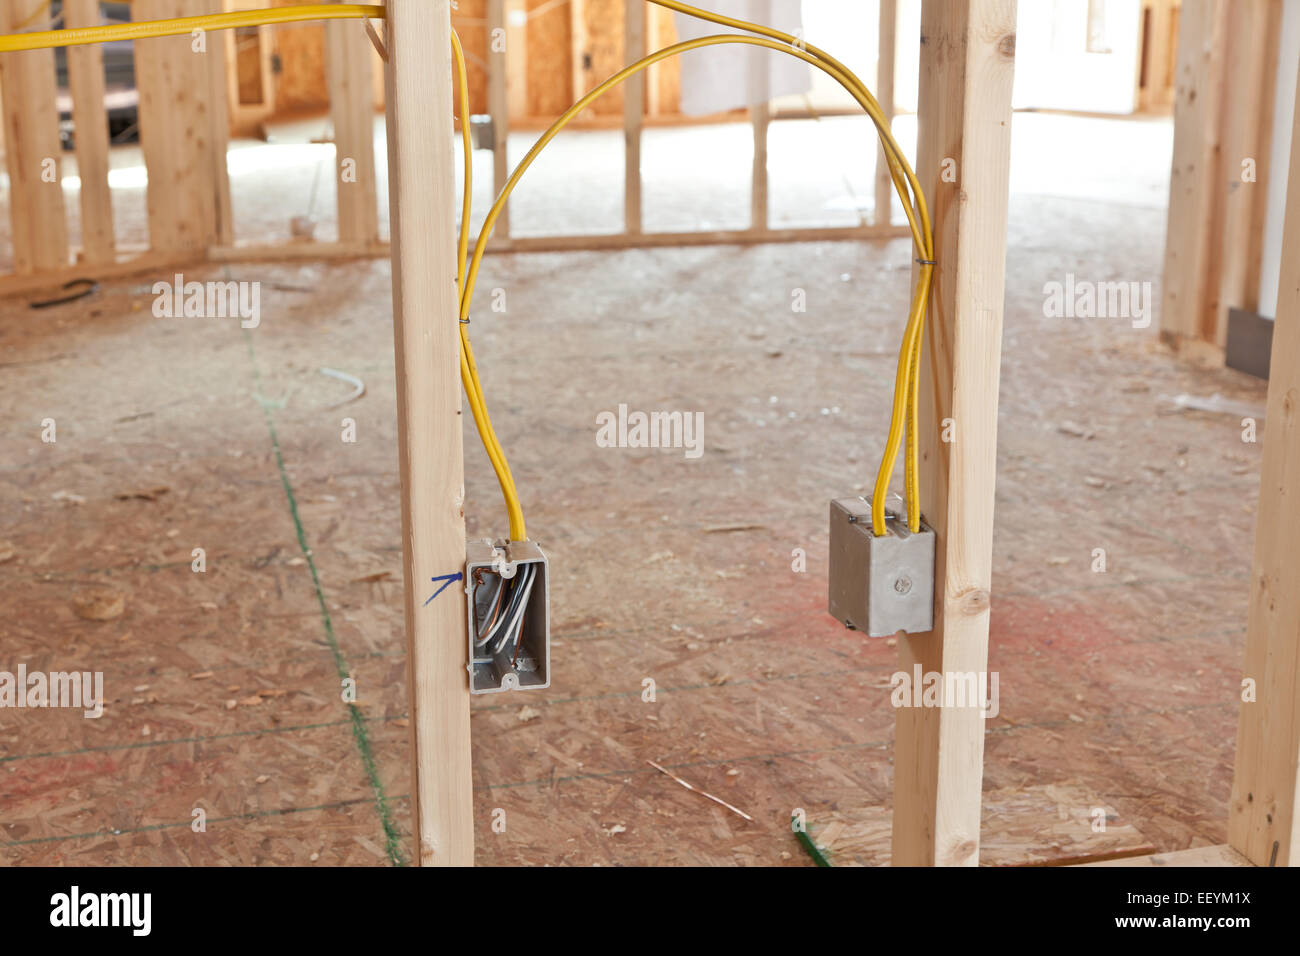 electrical wiring in new home construction stock photo 78055094 alamy rh alamy com wiring new house list for supplies needed wiring new house for internet and cable